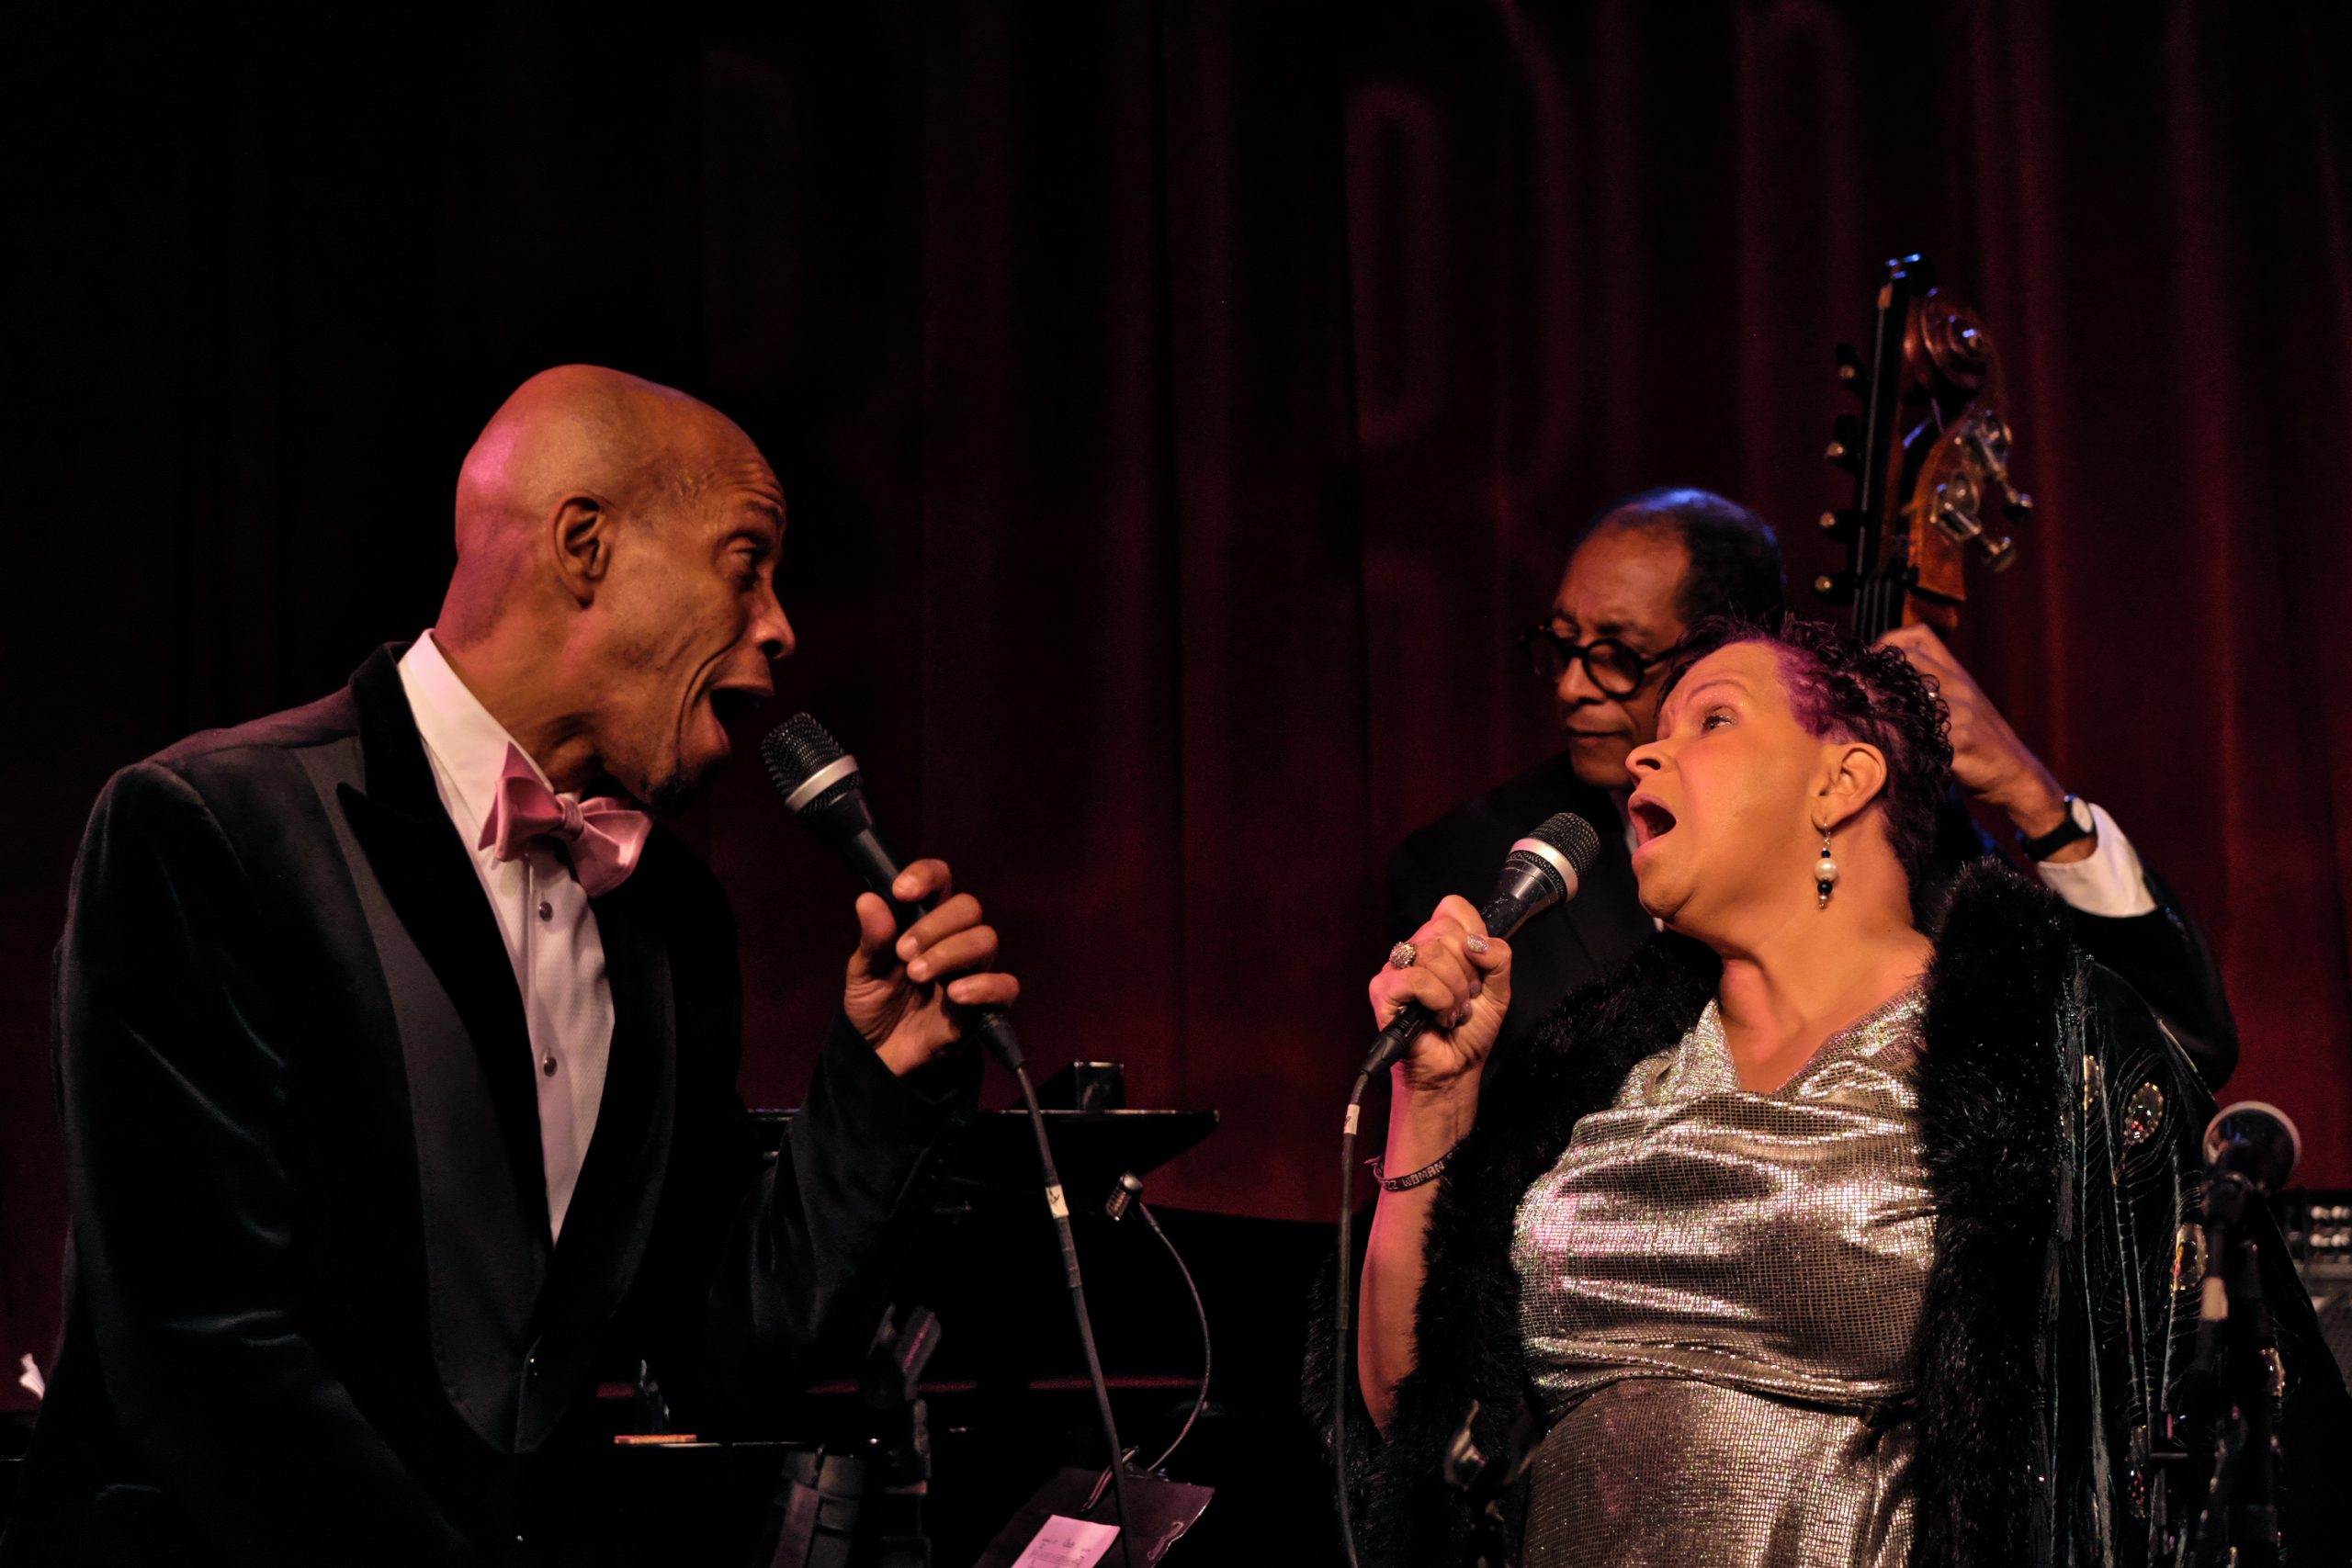 Hot House Magazine and Jazzmobile Celebrate A Night With the Stars At the New York City Readers Jazz Awards at the Historic Birdland Jazz Club